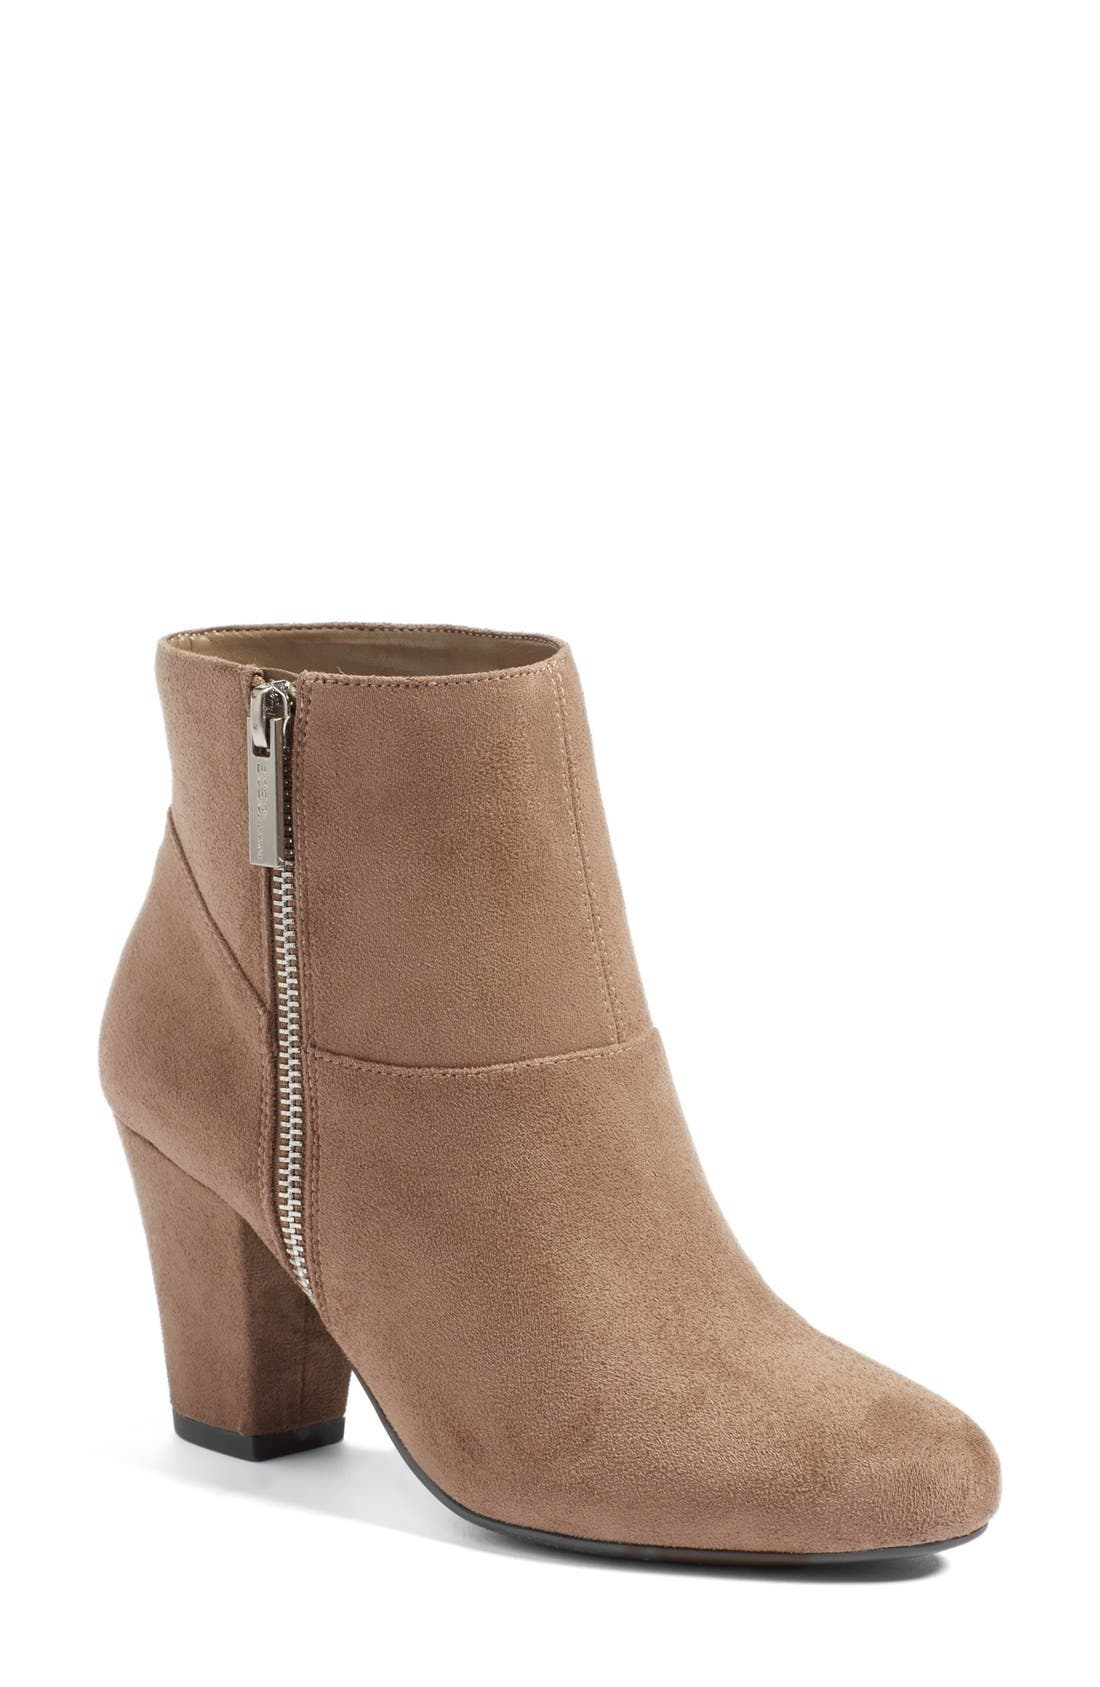 Alternate Image 1 Selected - BCBGeneration 'Devvin' Ankle Bootie (Women)